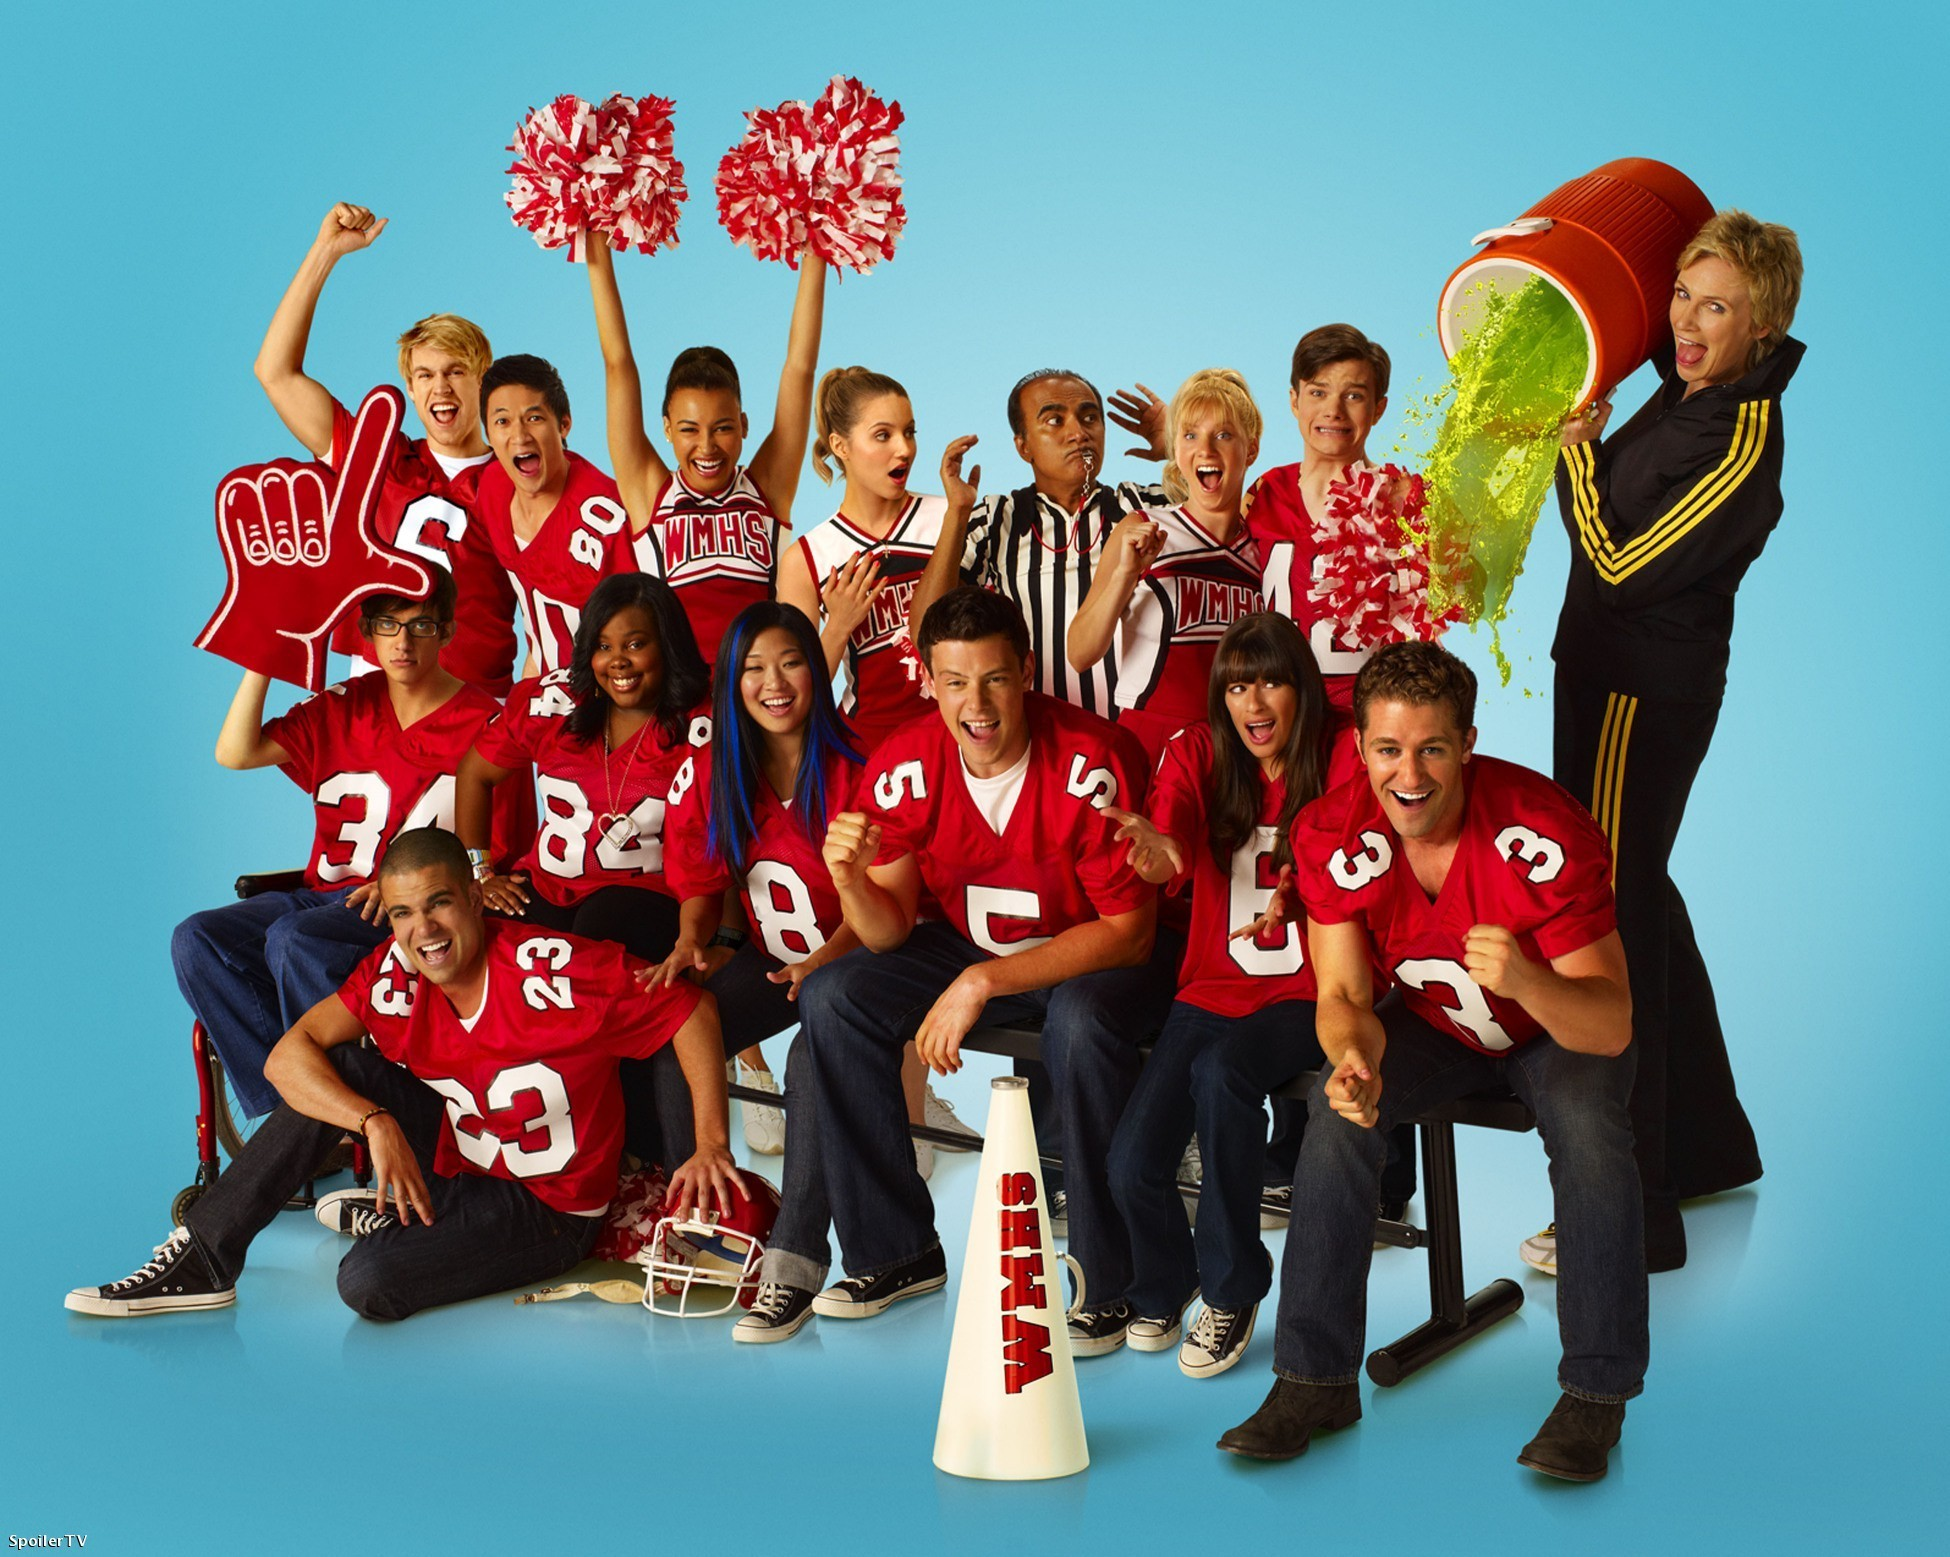 http://images.wikia.com/glee/images/0/0e/The_photoshoot.jpg